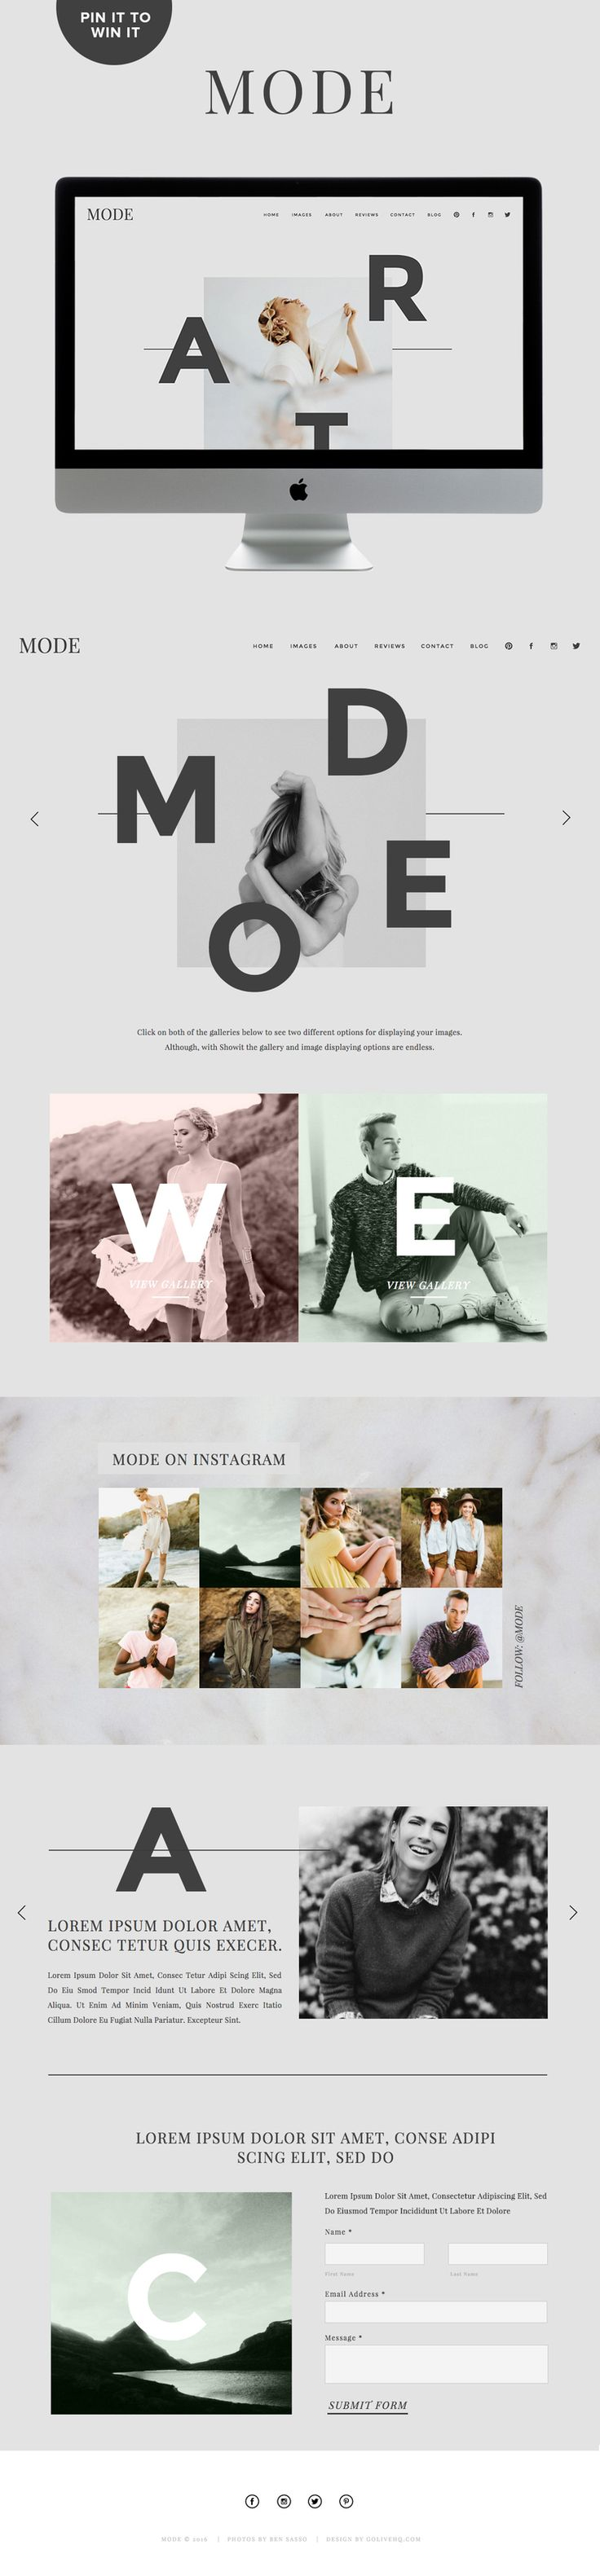 Showit 5 website theme inspiration | by GOLIVEHQ.CO